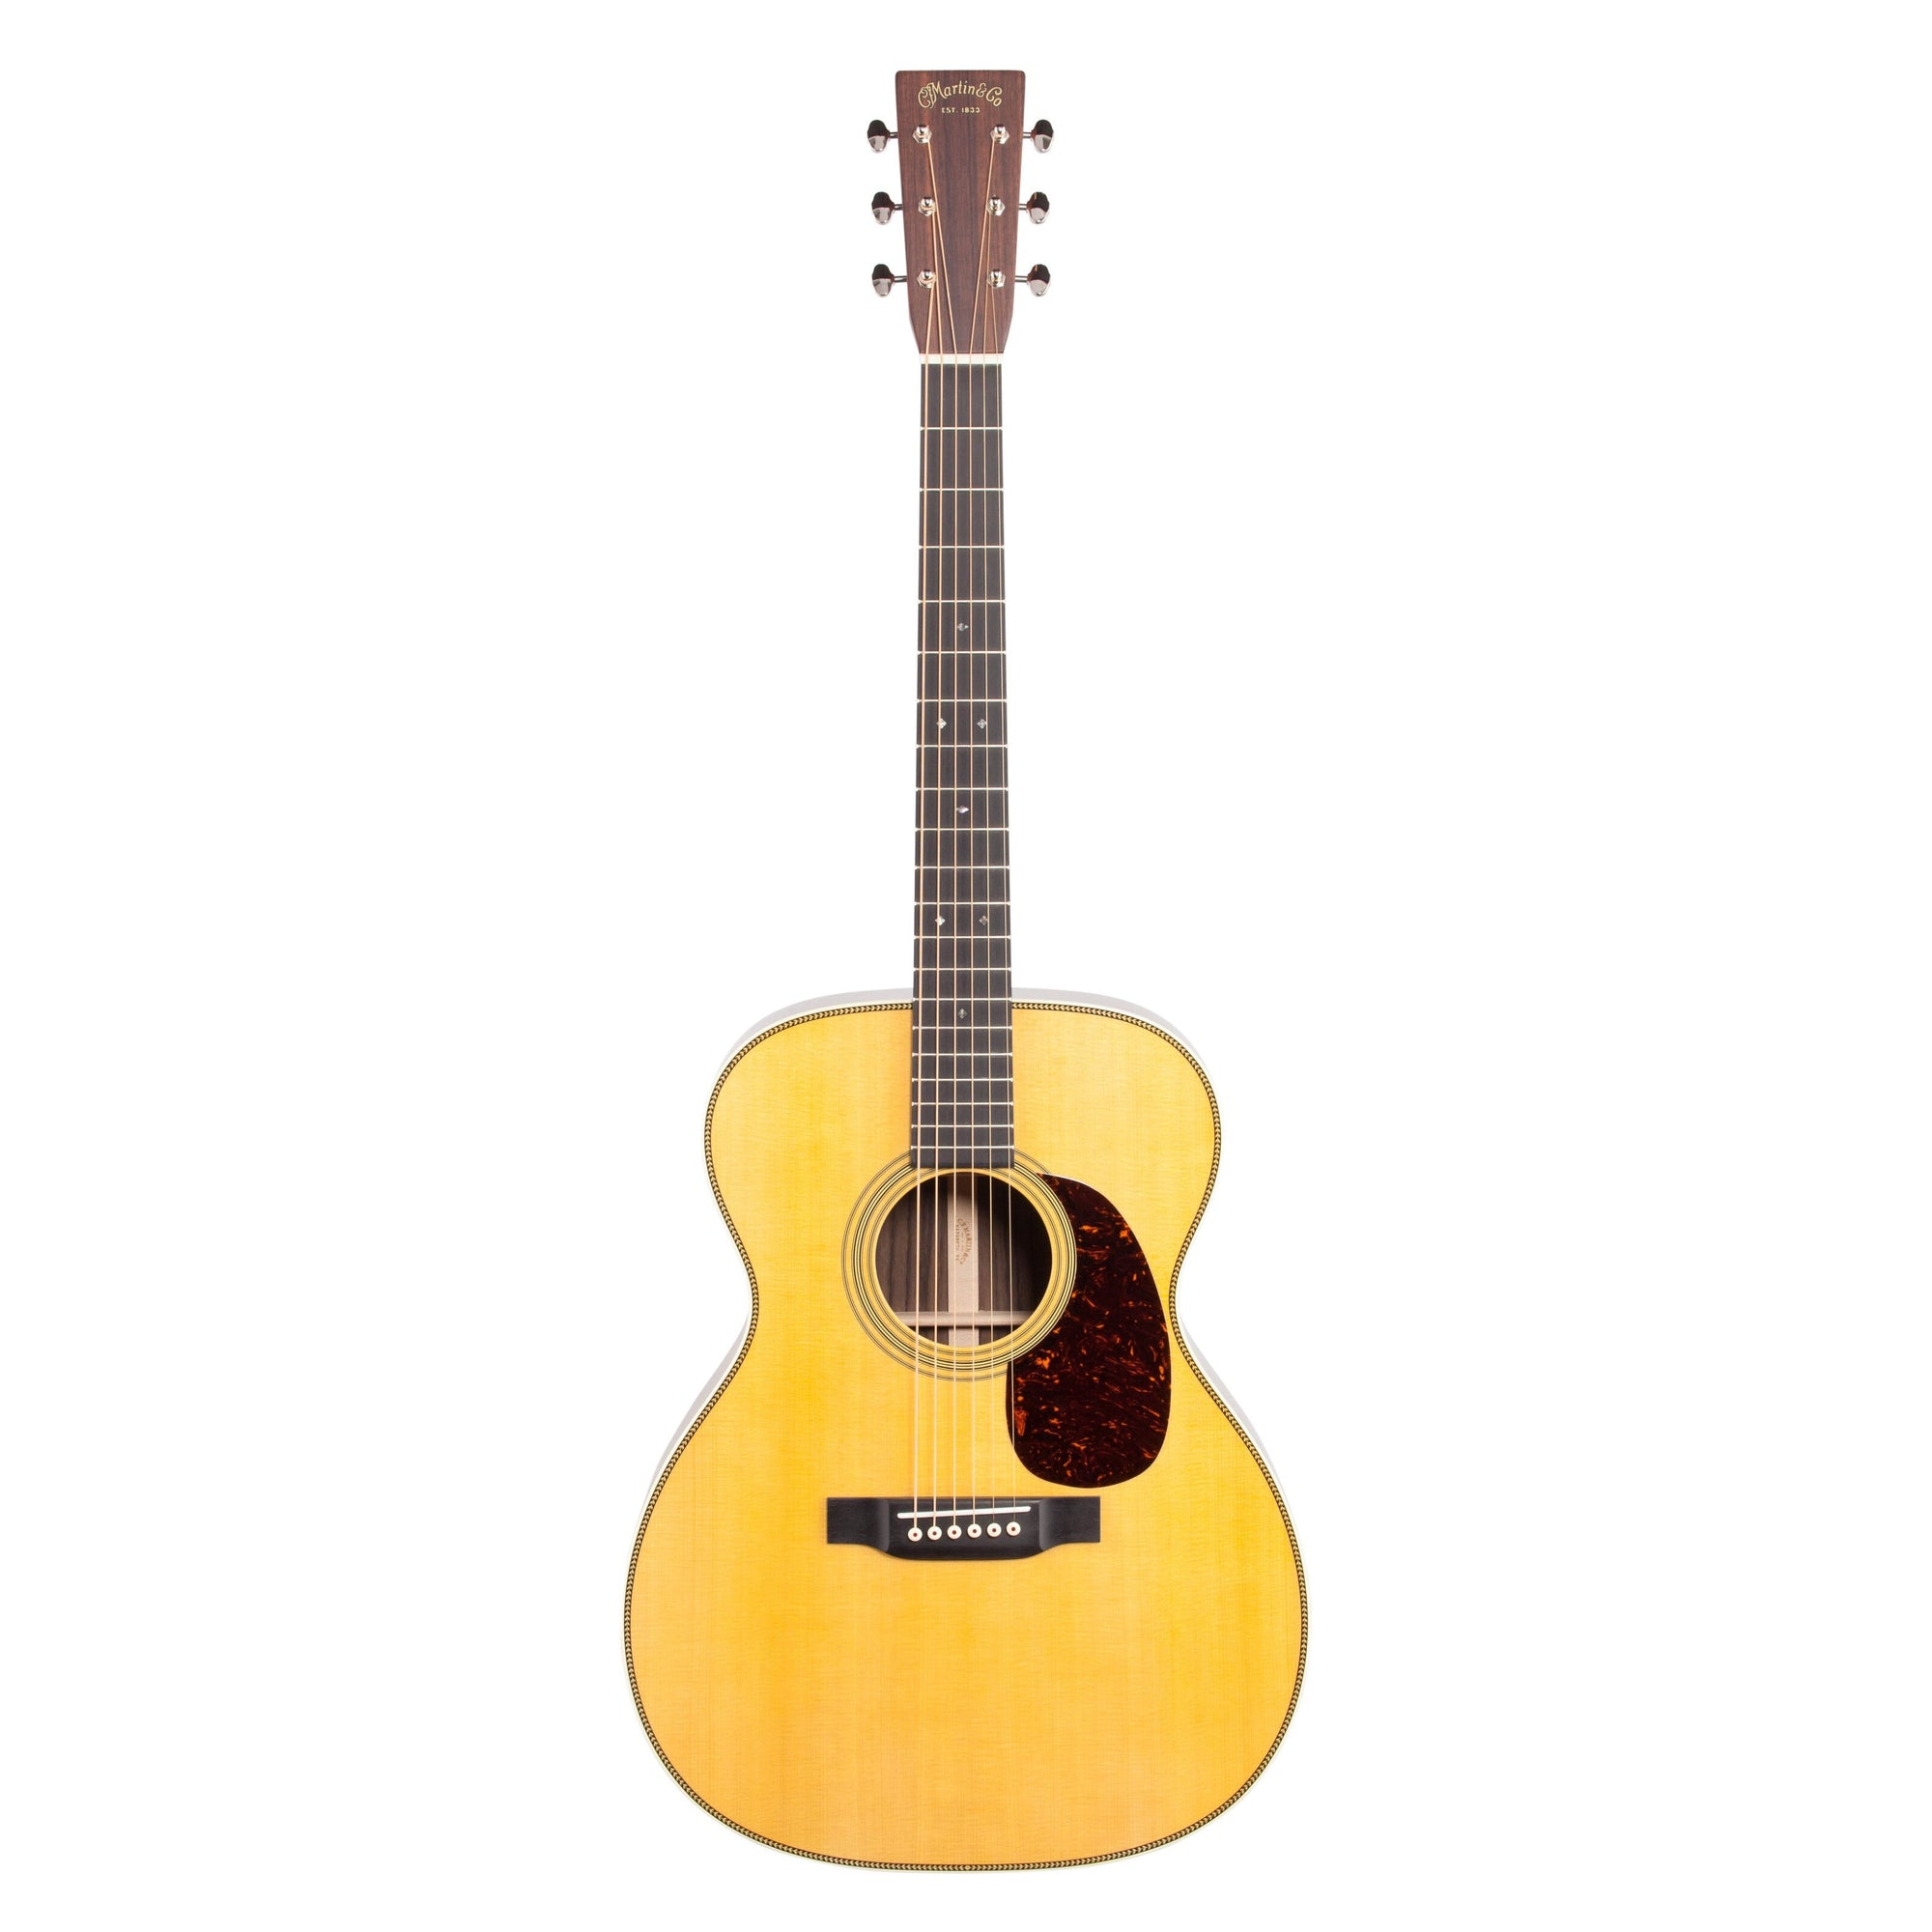 Martin 000-28 Redesign 2018 Acoustic Guitar (with Case)